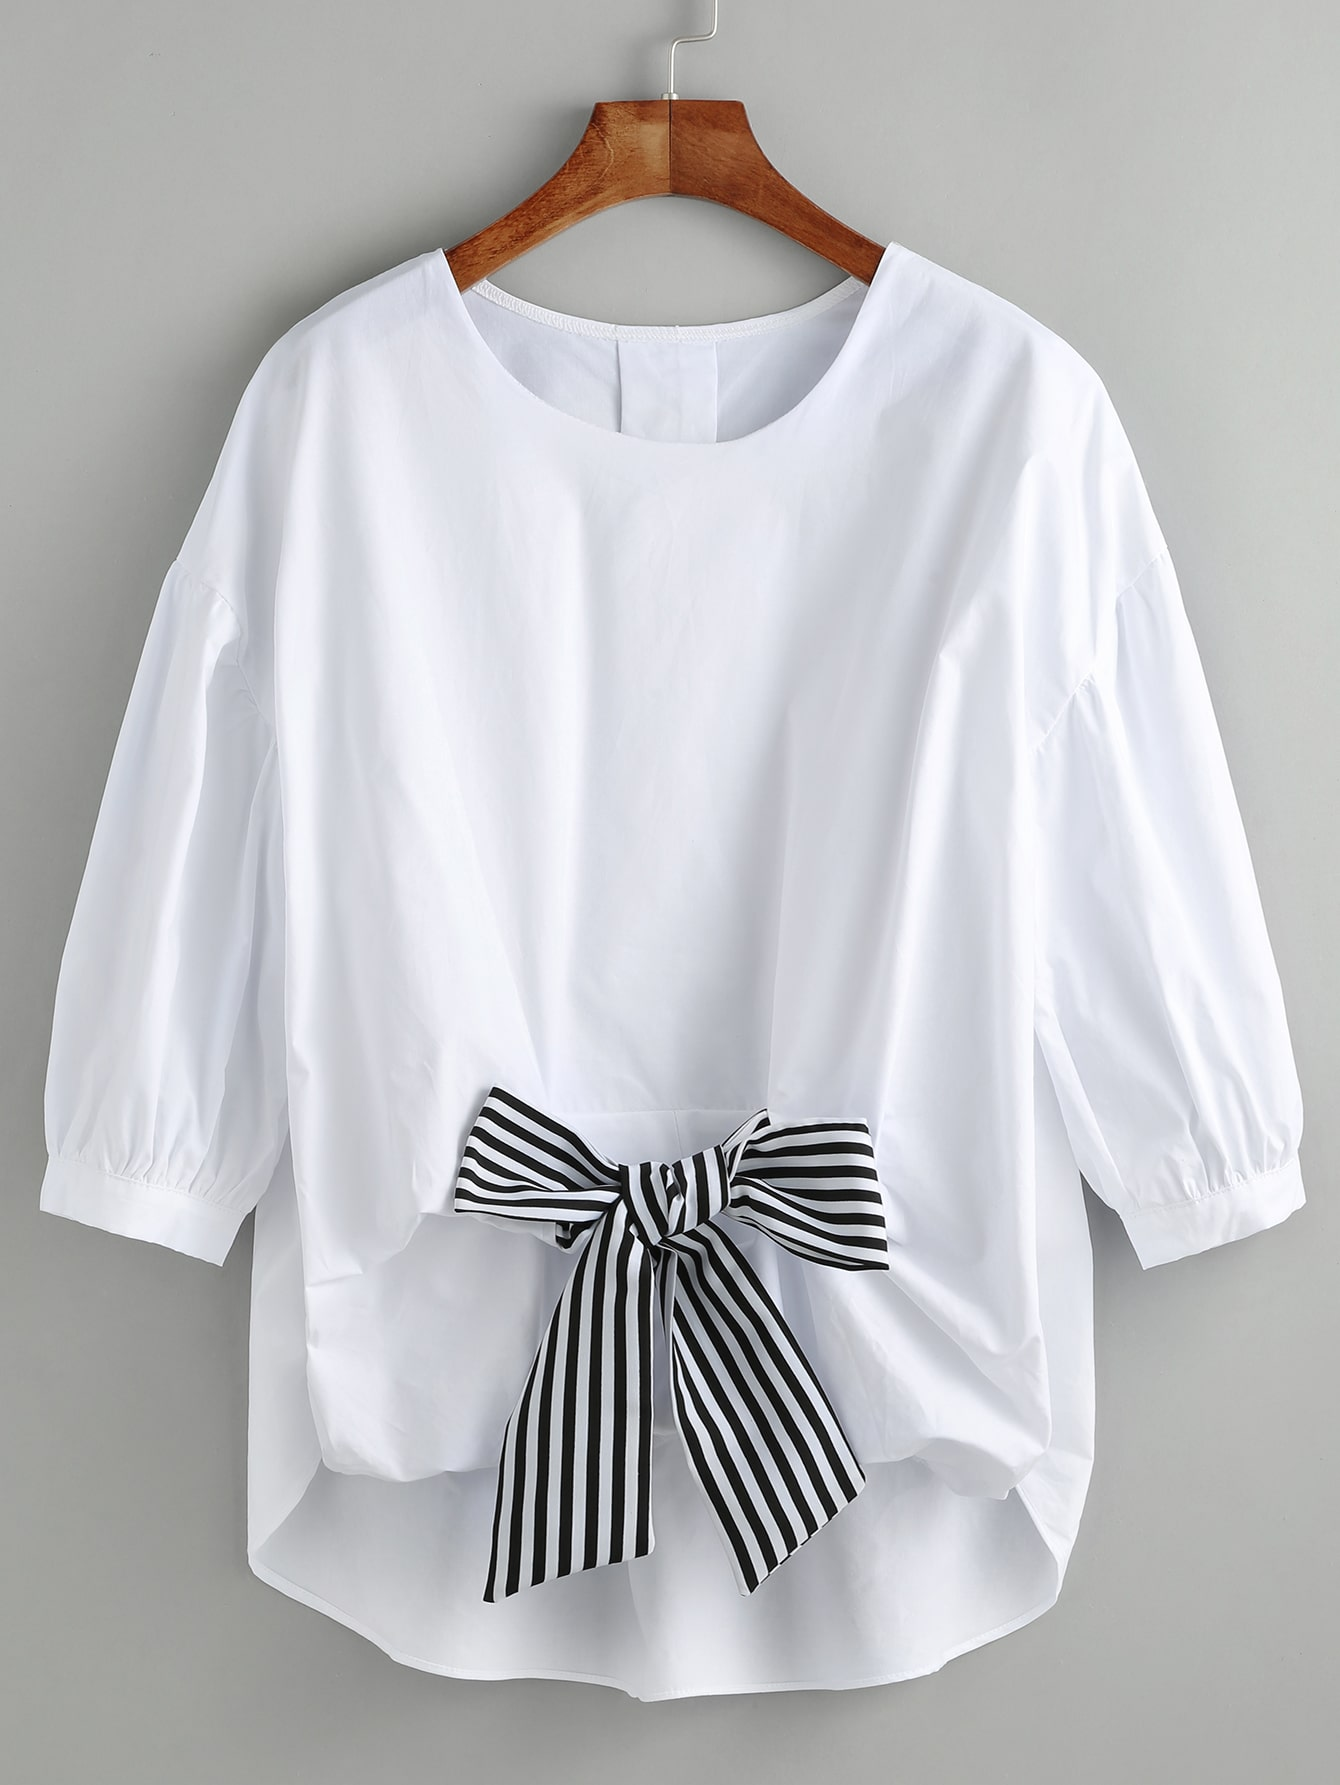 White High Low Blouse With Contrast BowWhite High Low Blouse With Contrast Bow<br><br>color: White<br>size: one-size